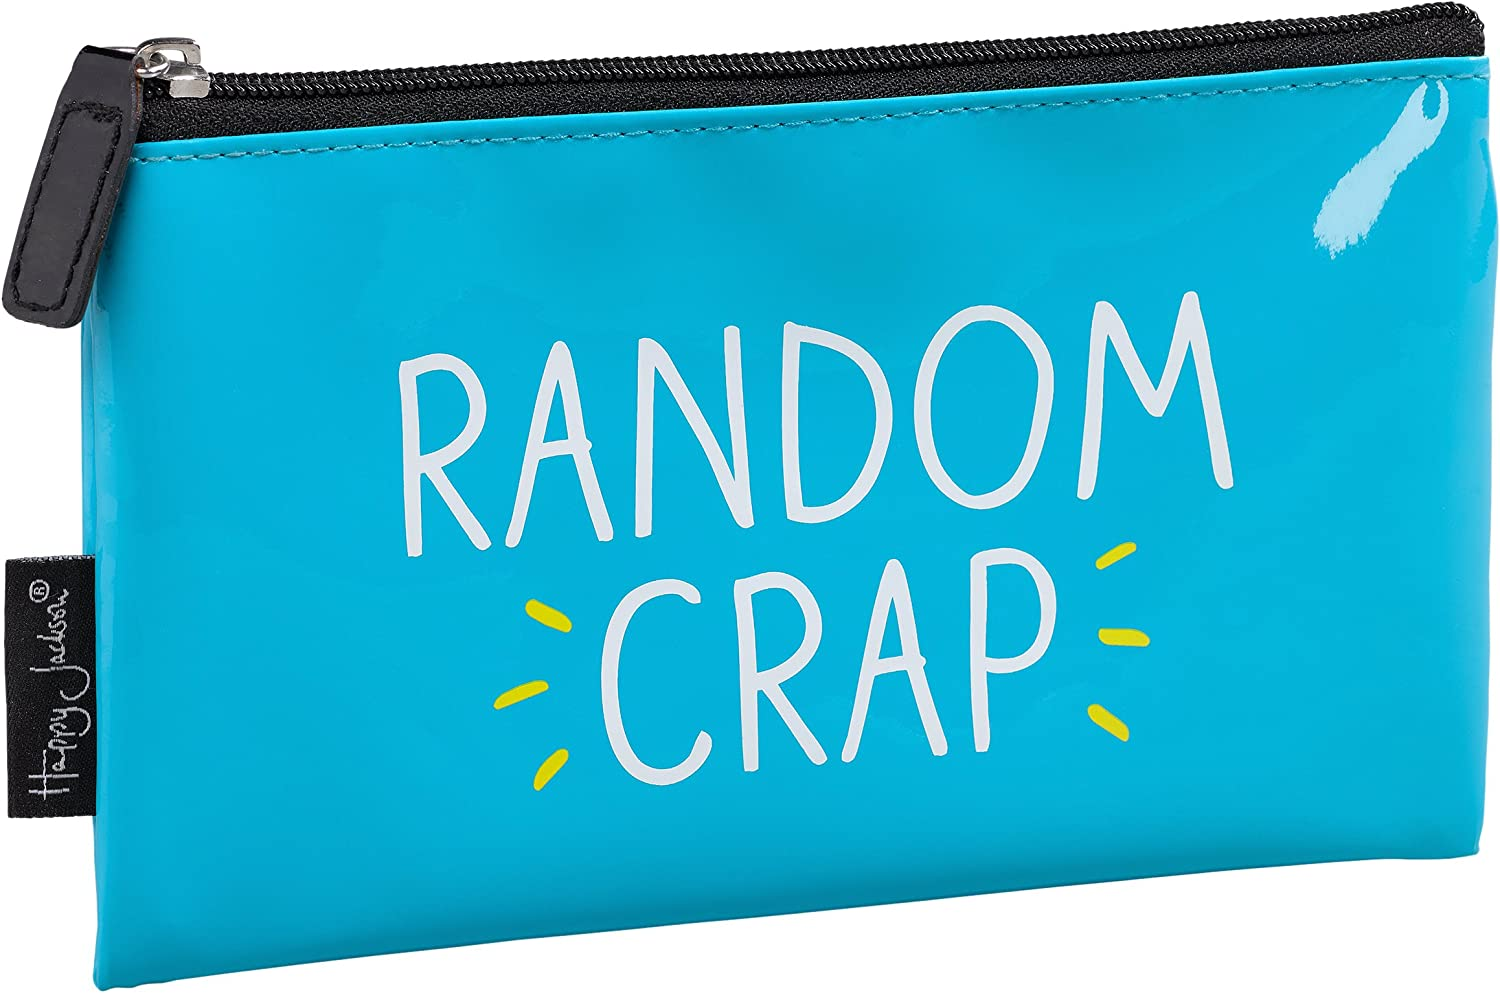 Estuche para lápices Happy Jackson con texto impreso en inglés «Random Crap», color azul: Amazon.es: Oficina y papelería